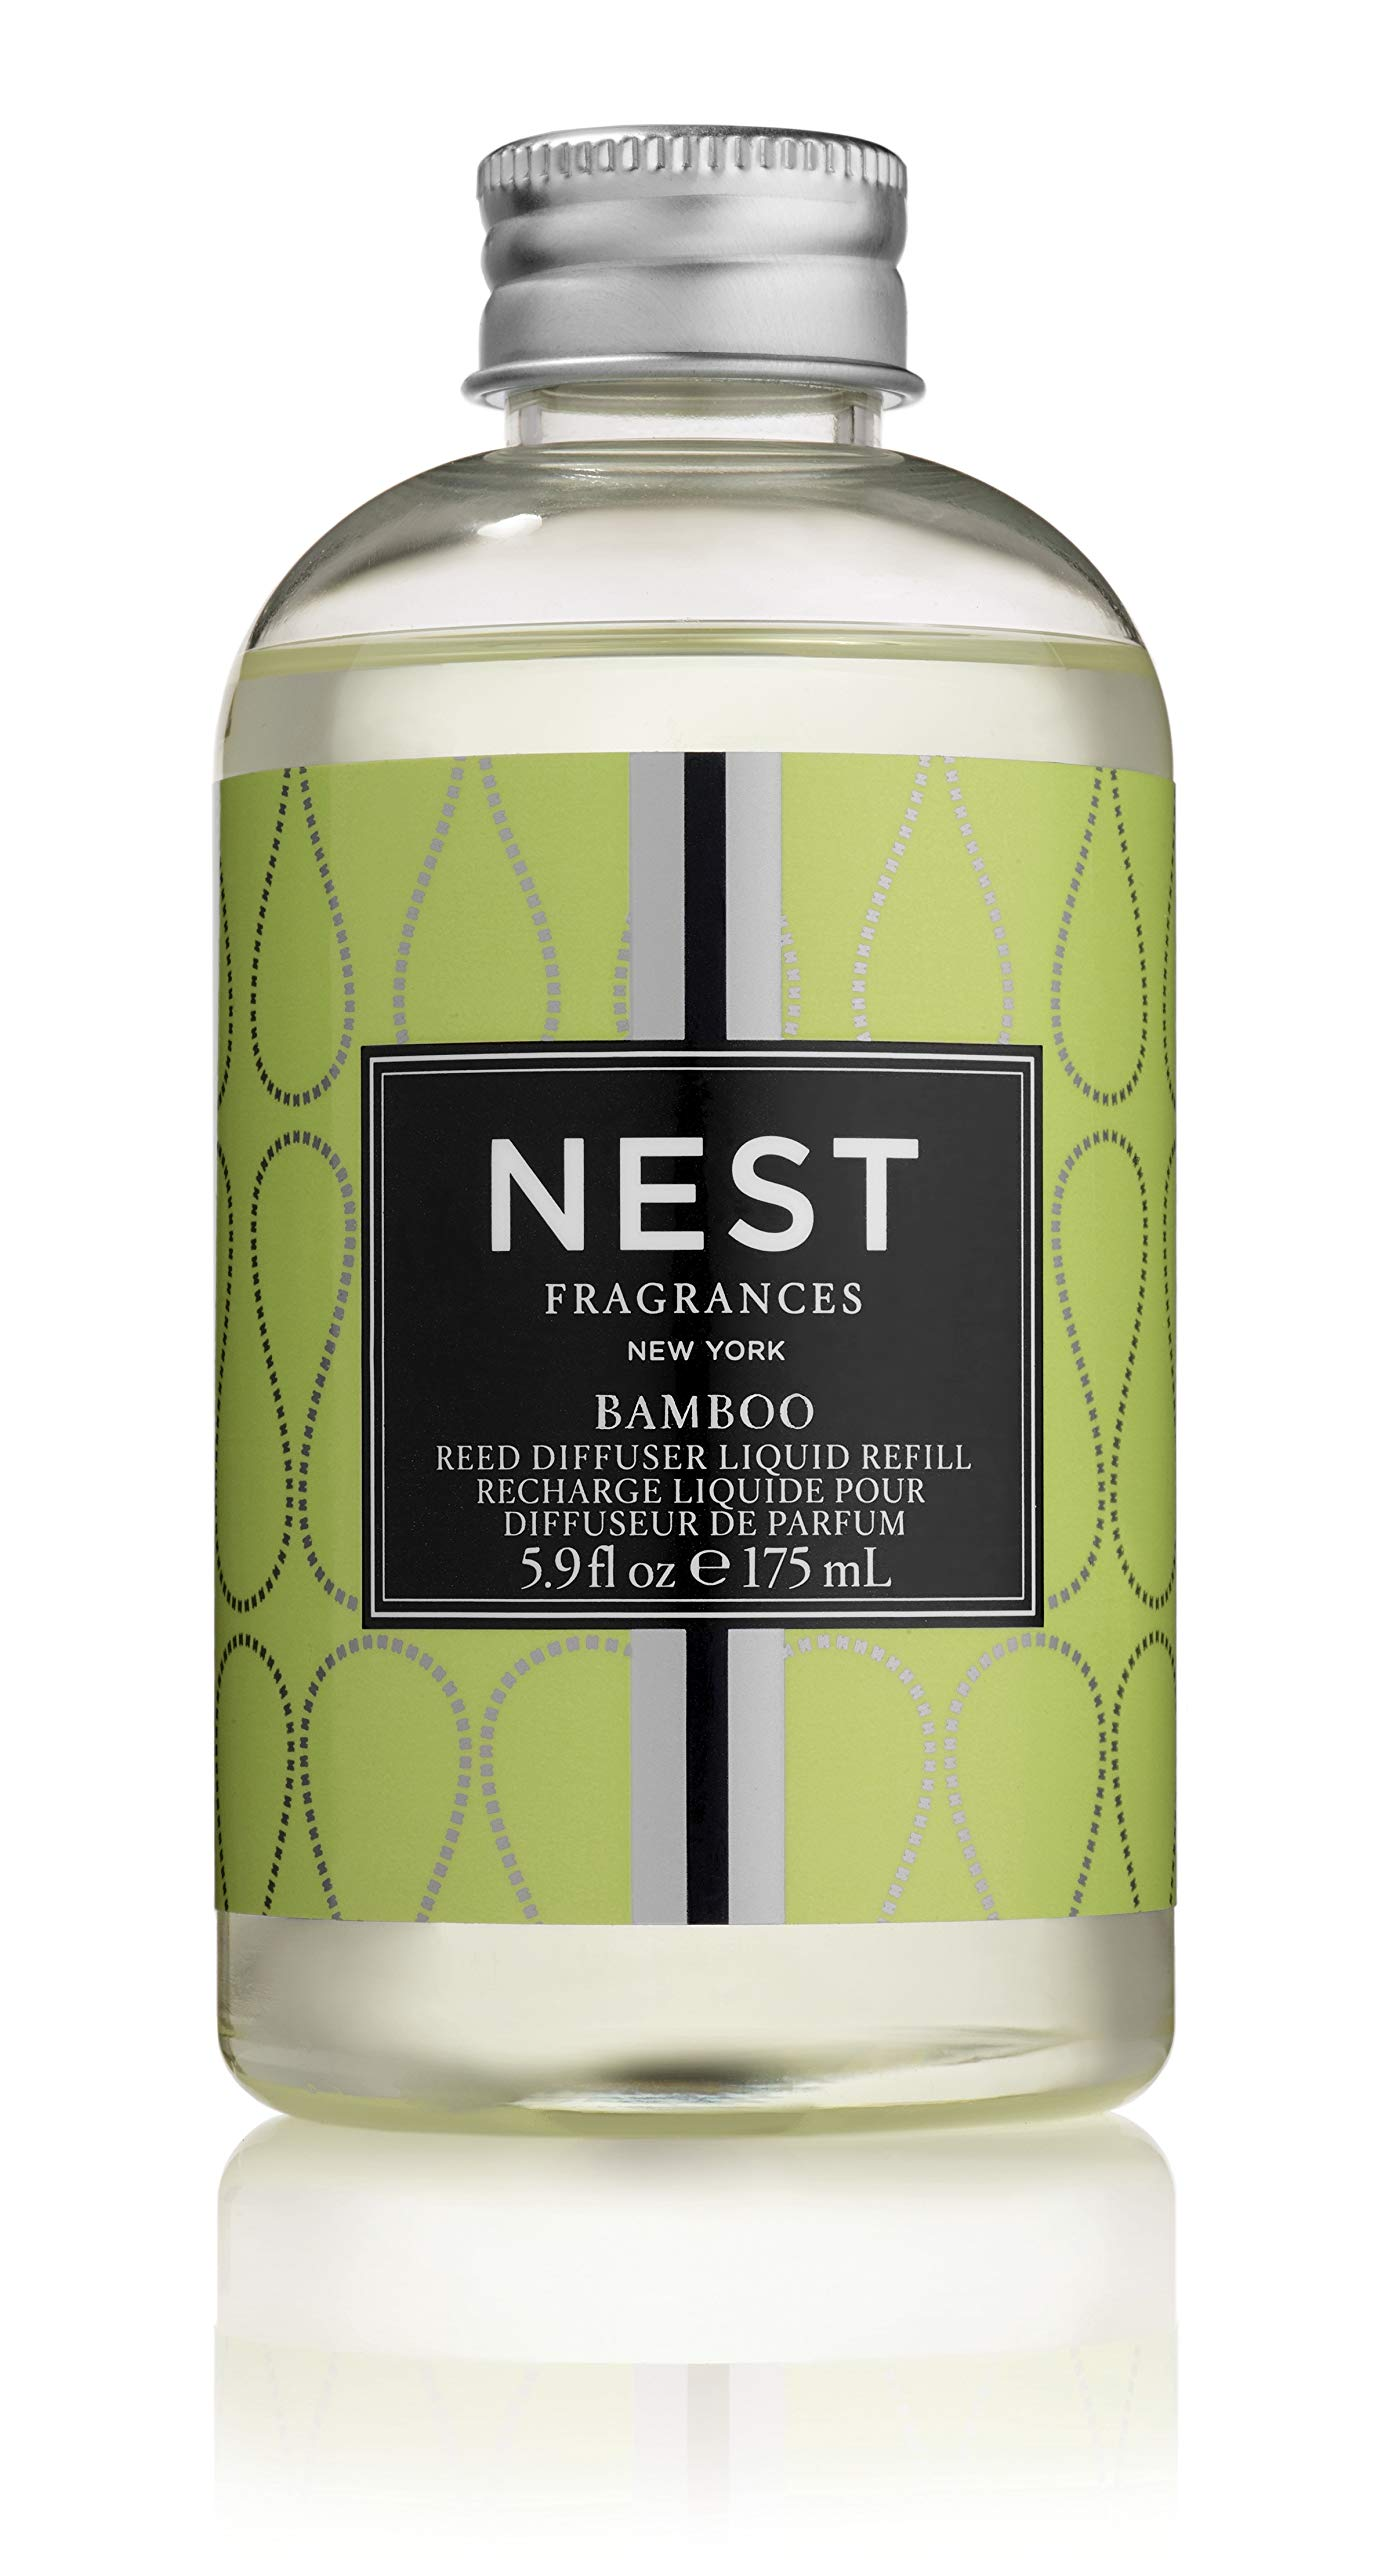 NEST Fragrances Bamboo Reed Diffuser Liquid Refill by NEST Fragrances